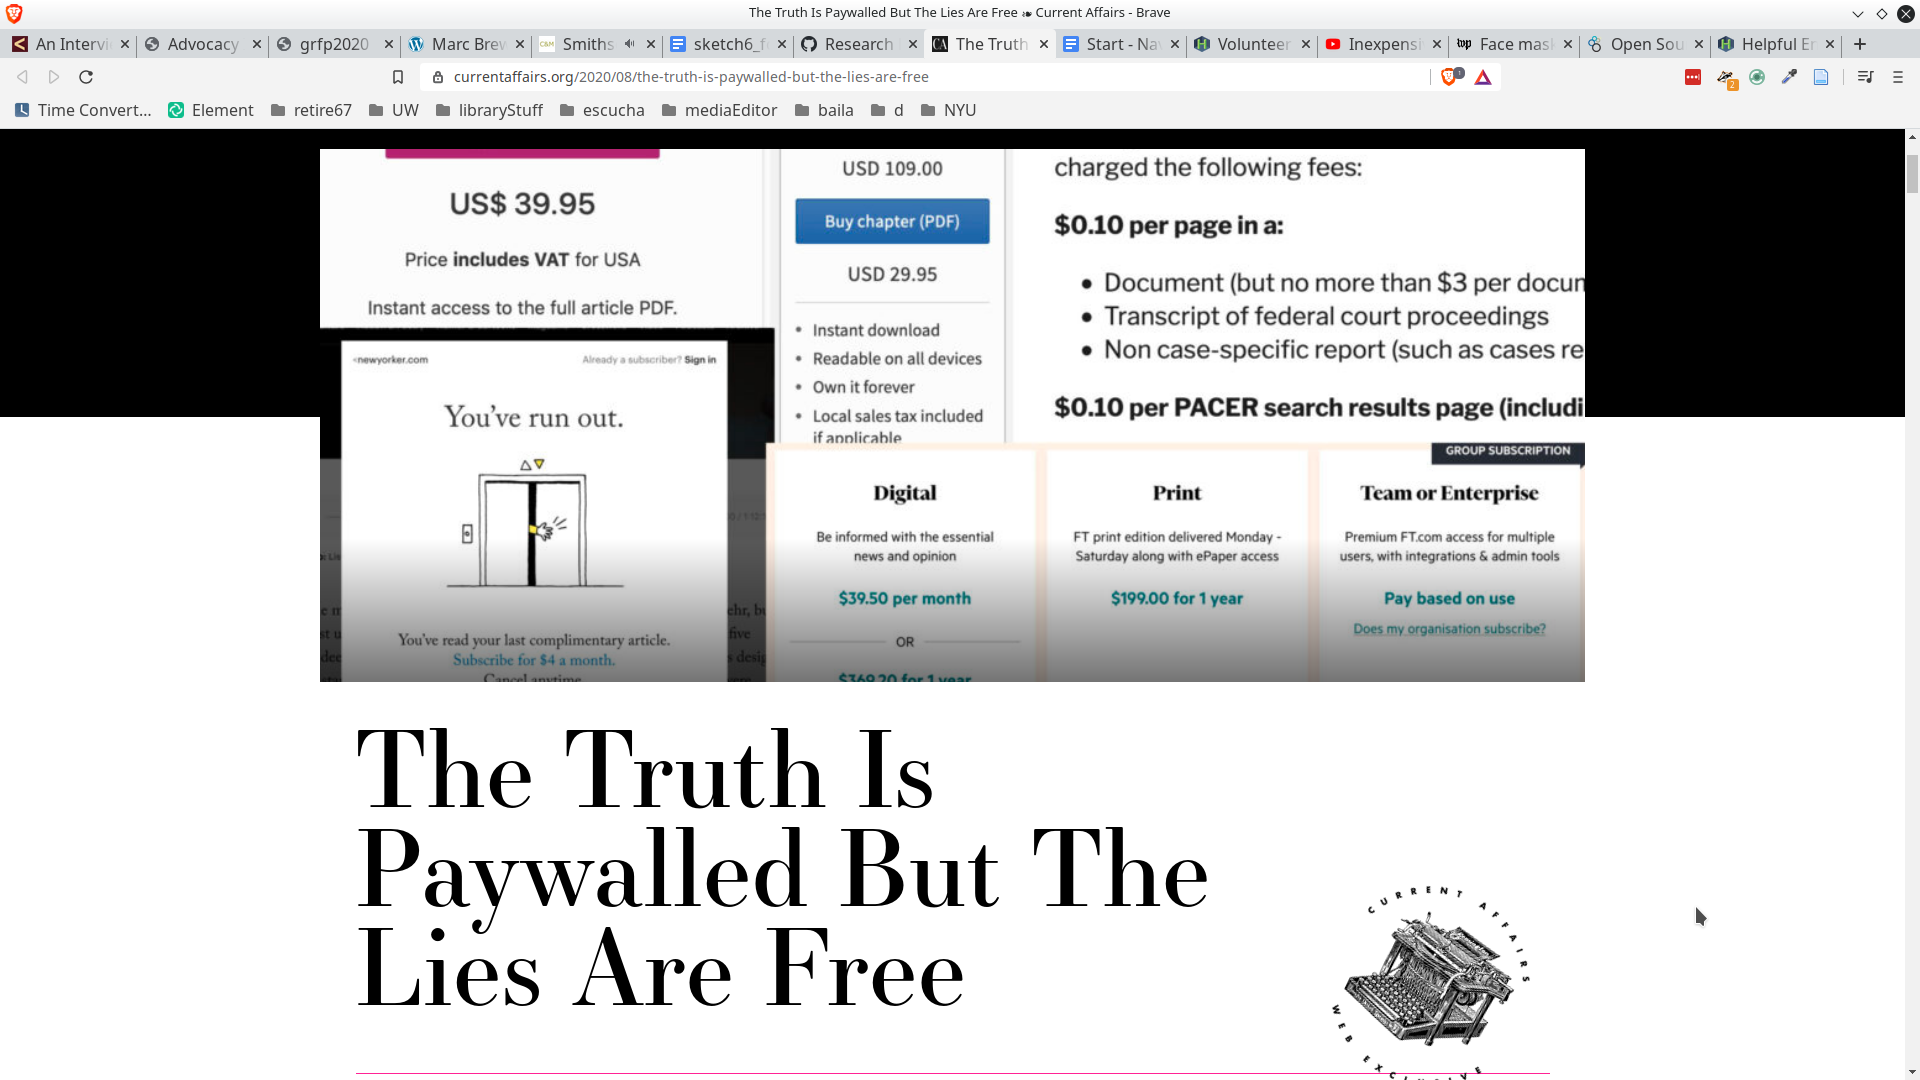 screenshot of news article Truth is Paywalled But the Lies Are Free